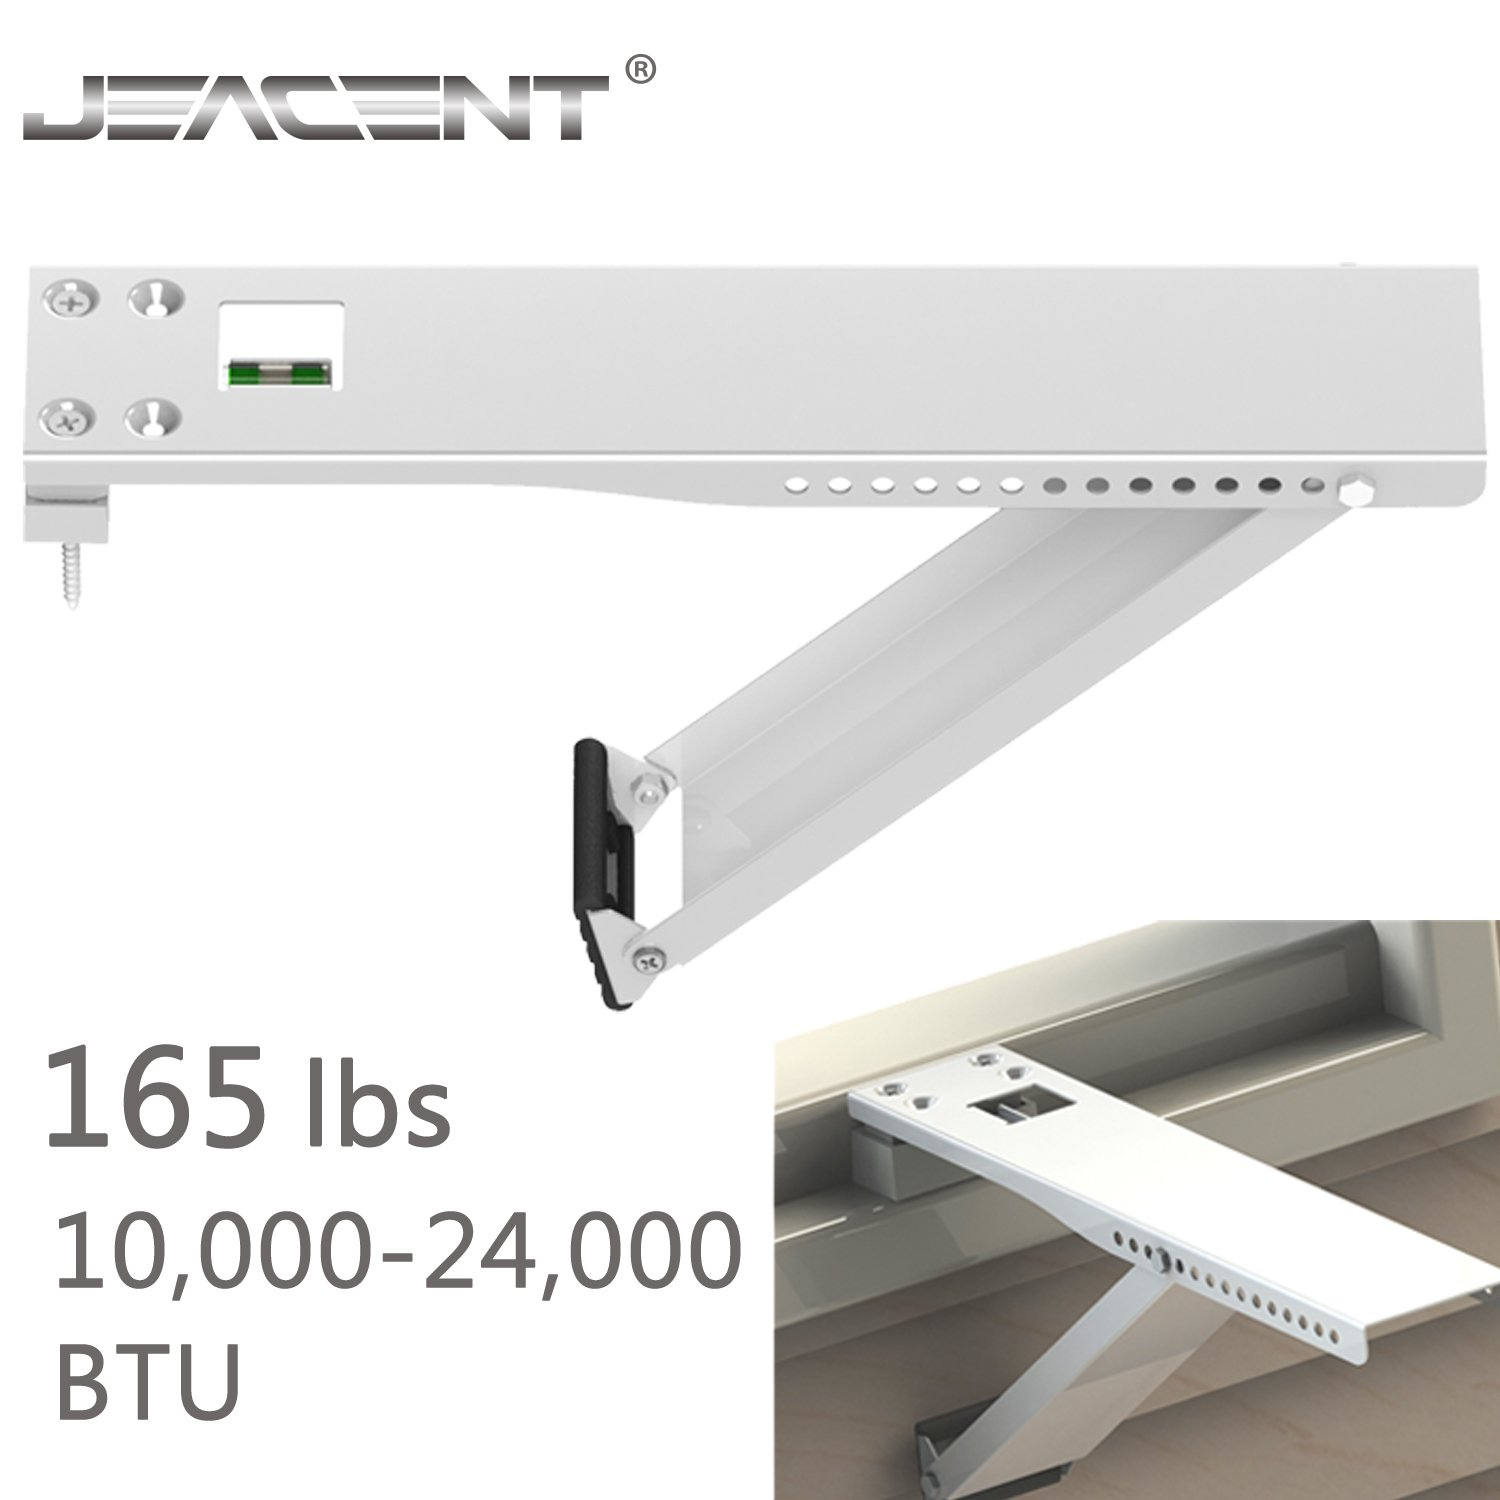 Jeacent Universal AC Window Air Conditioner Support Bracket Heavy Duty  Up to 165 lbs  for 10 000-24 000 BTU Jeacent Innovations PC01B-1